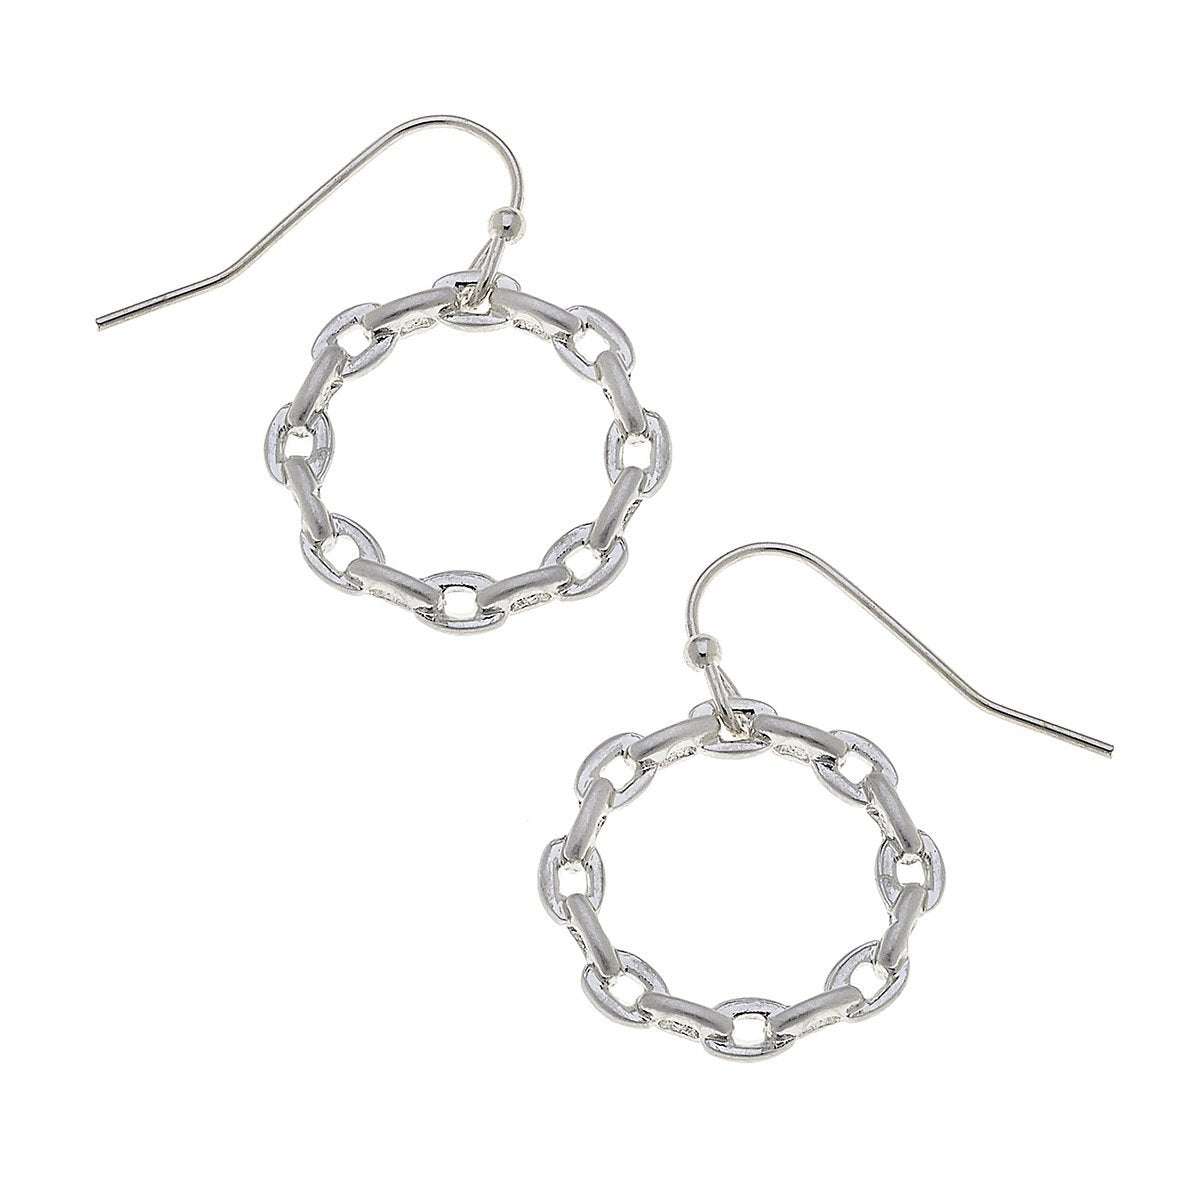 Heidi Hoop Earrings in Worn Silver